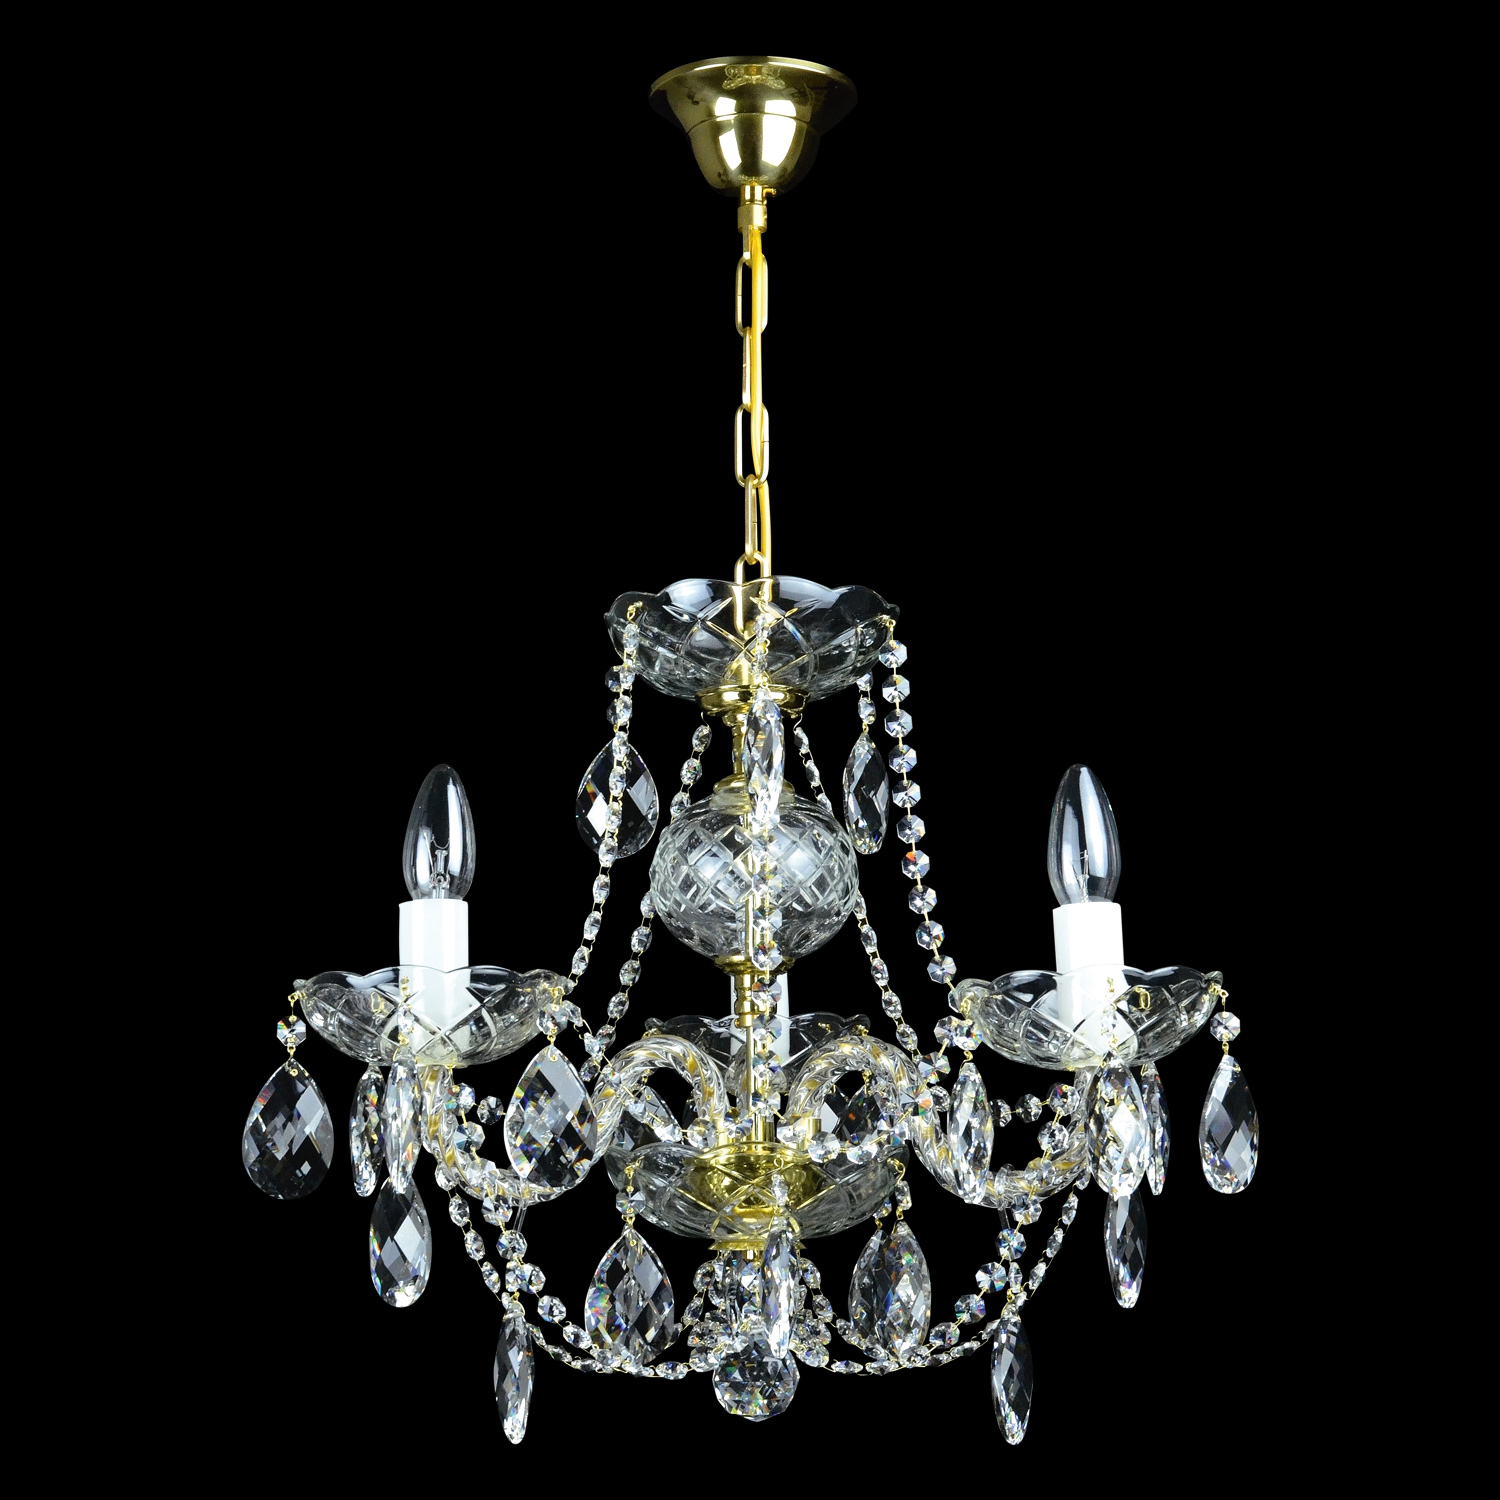 Chandelier from the Classe collection